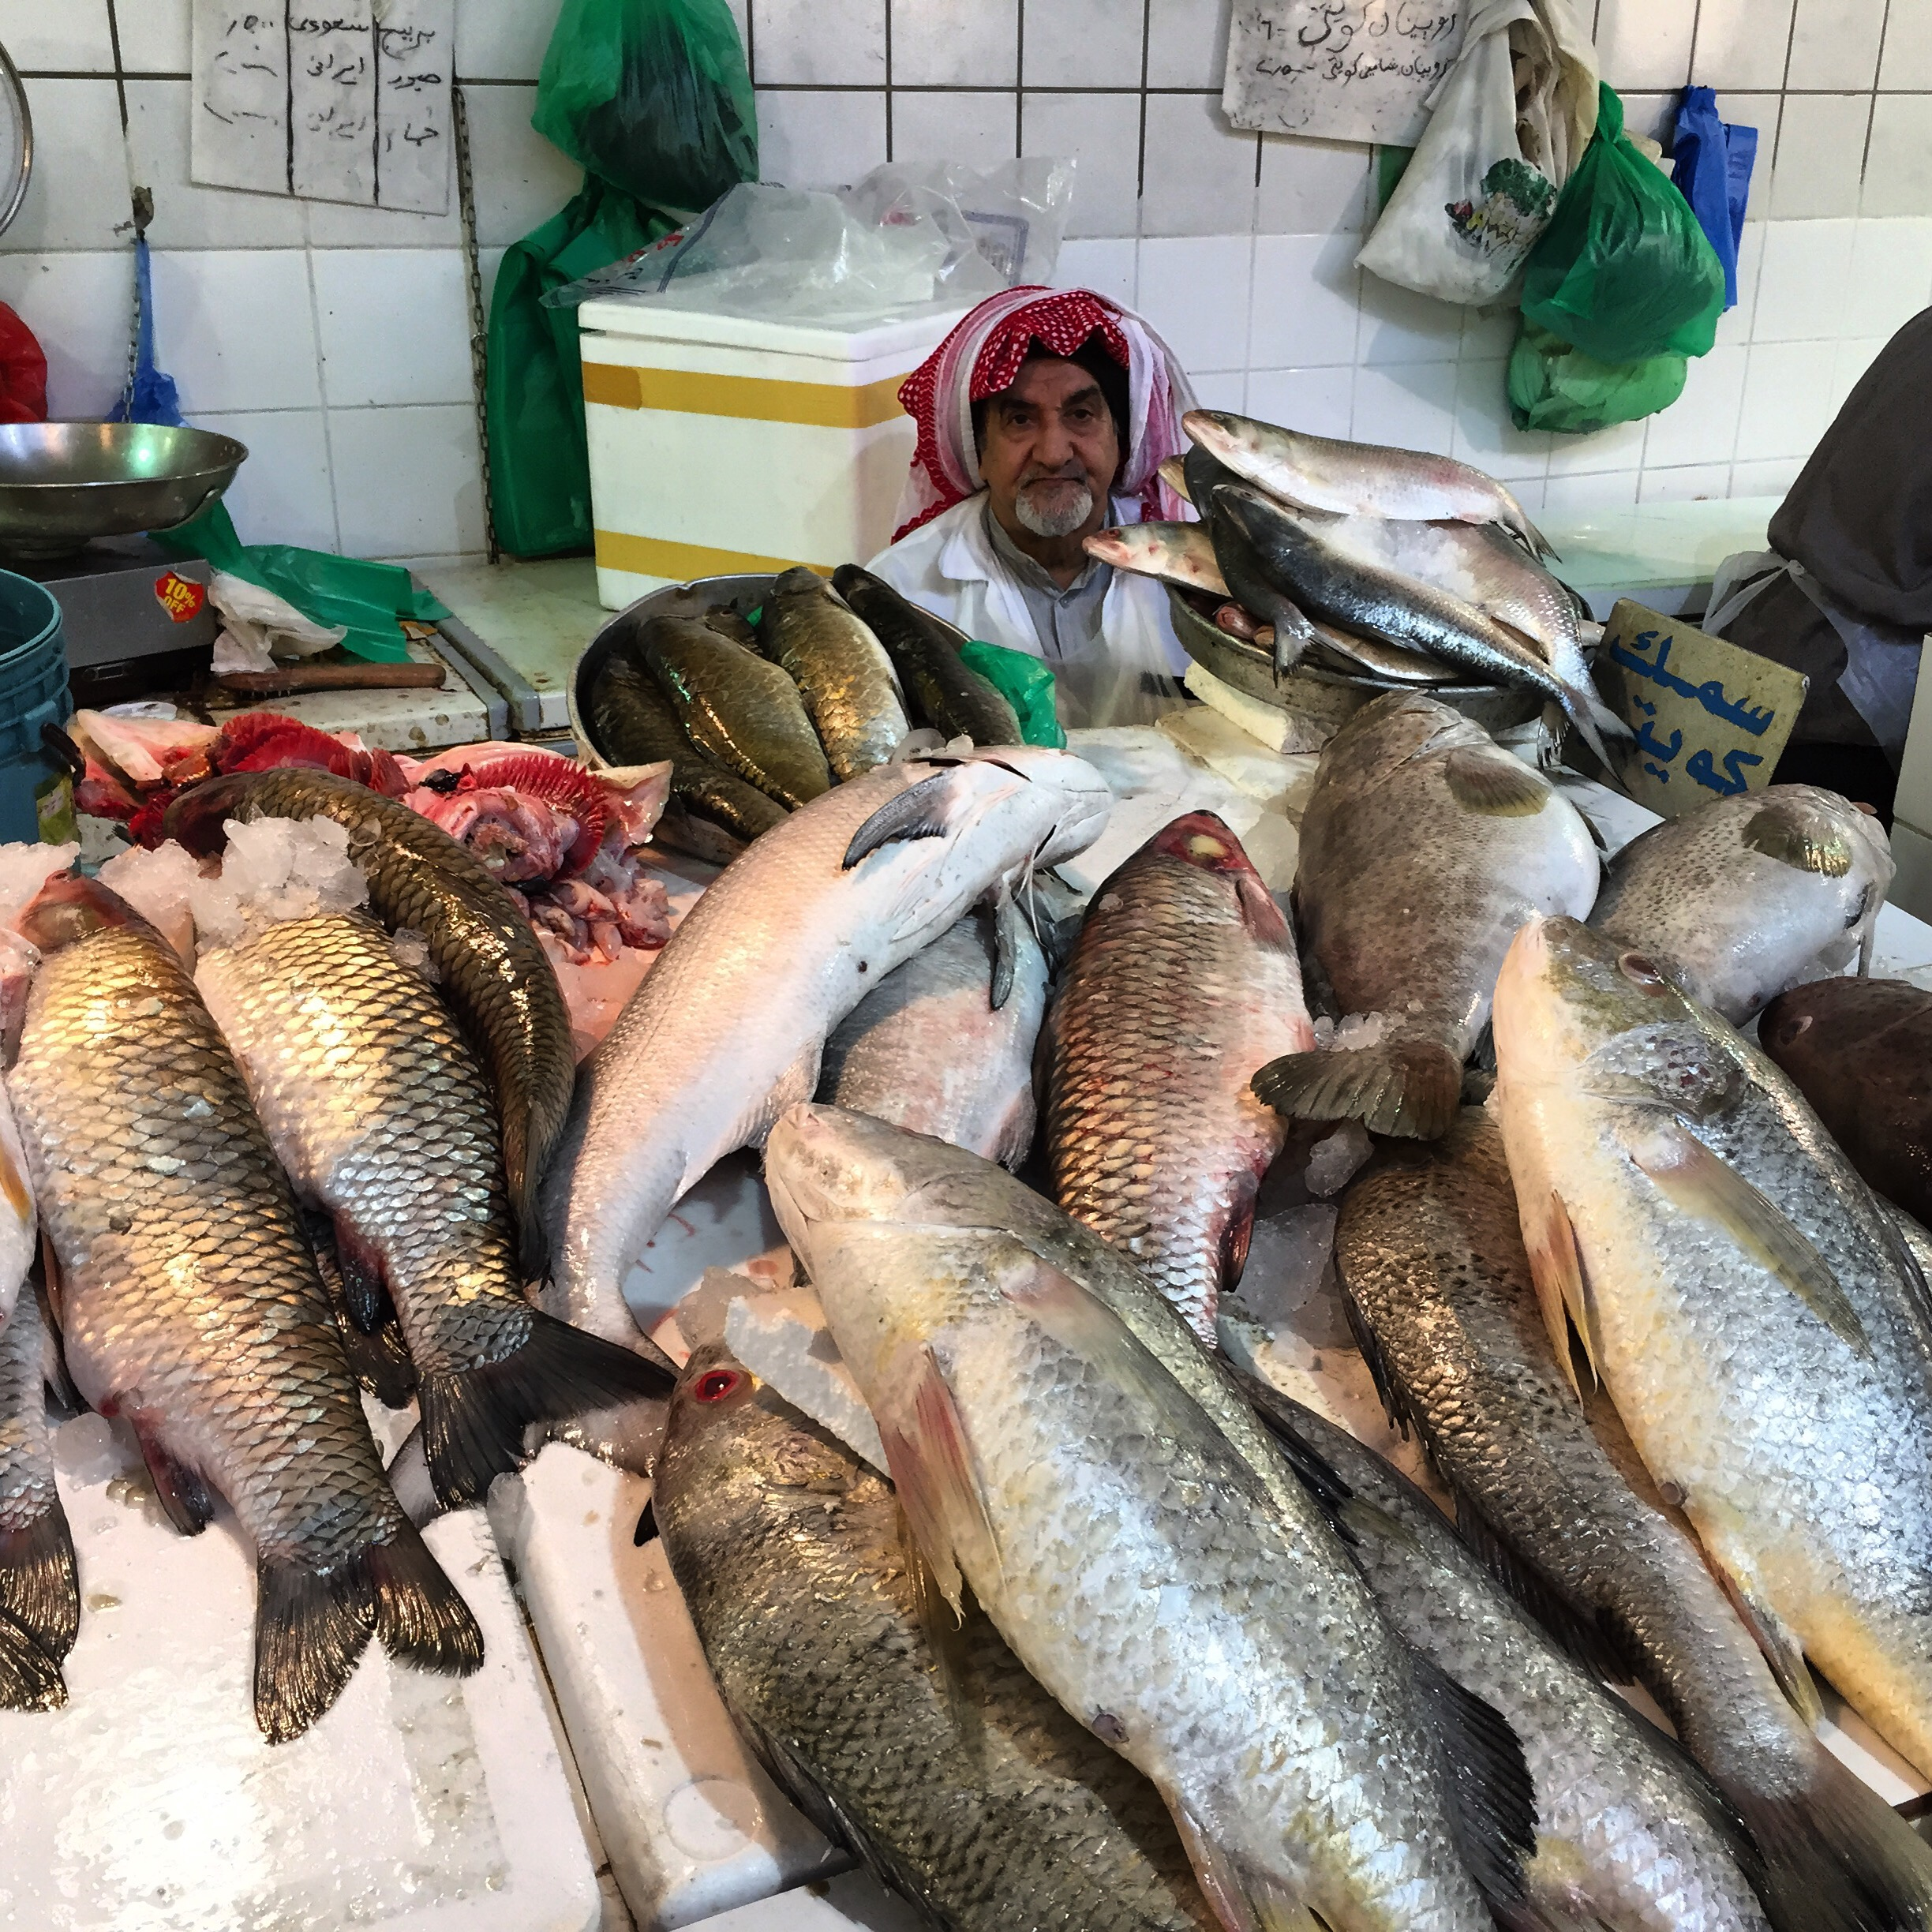 Fish vender in Kuwait market